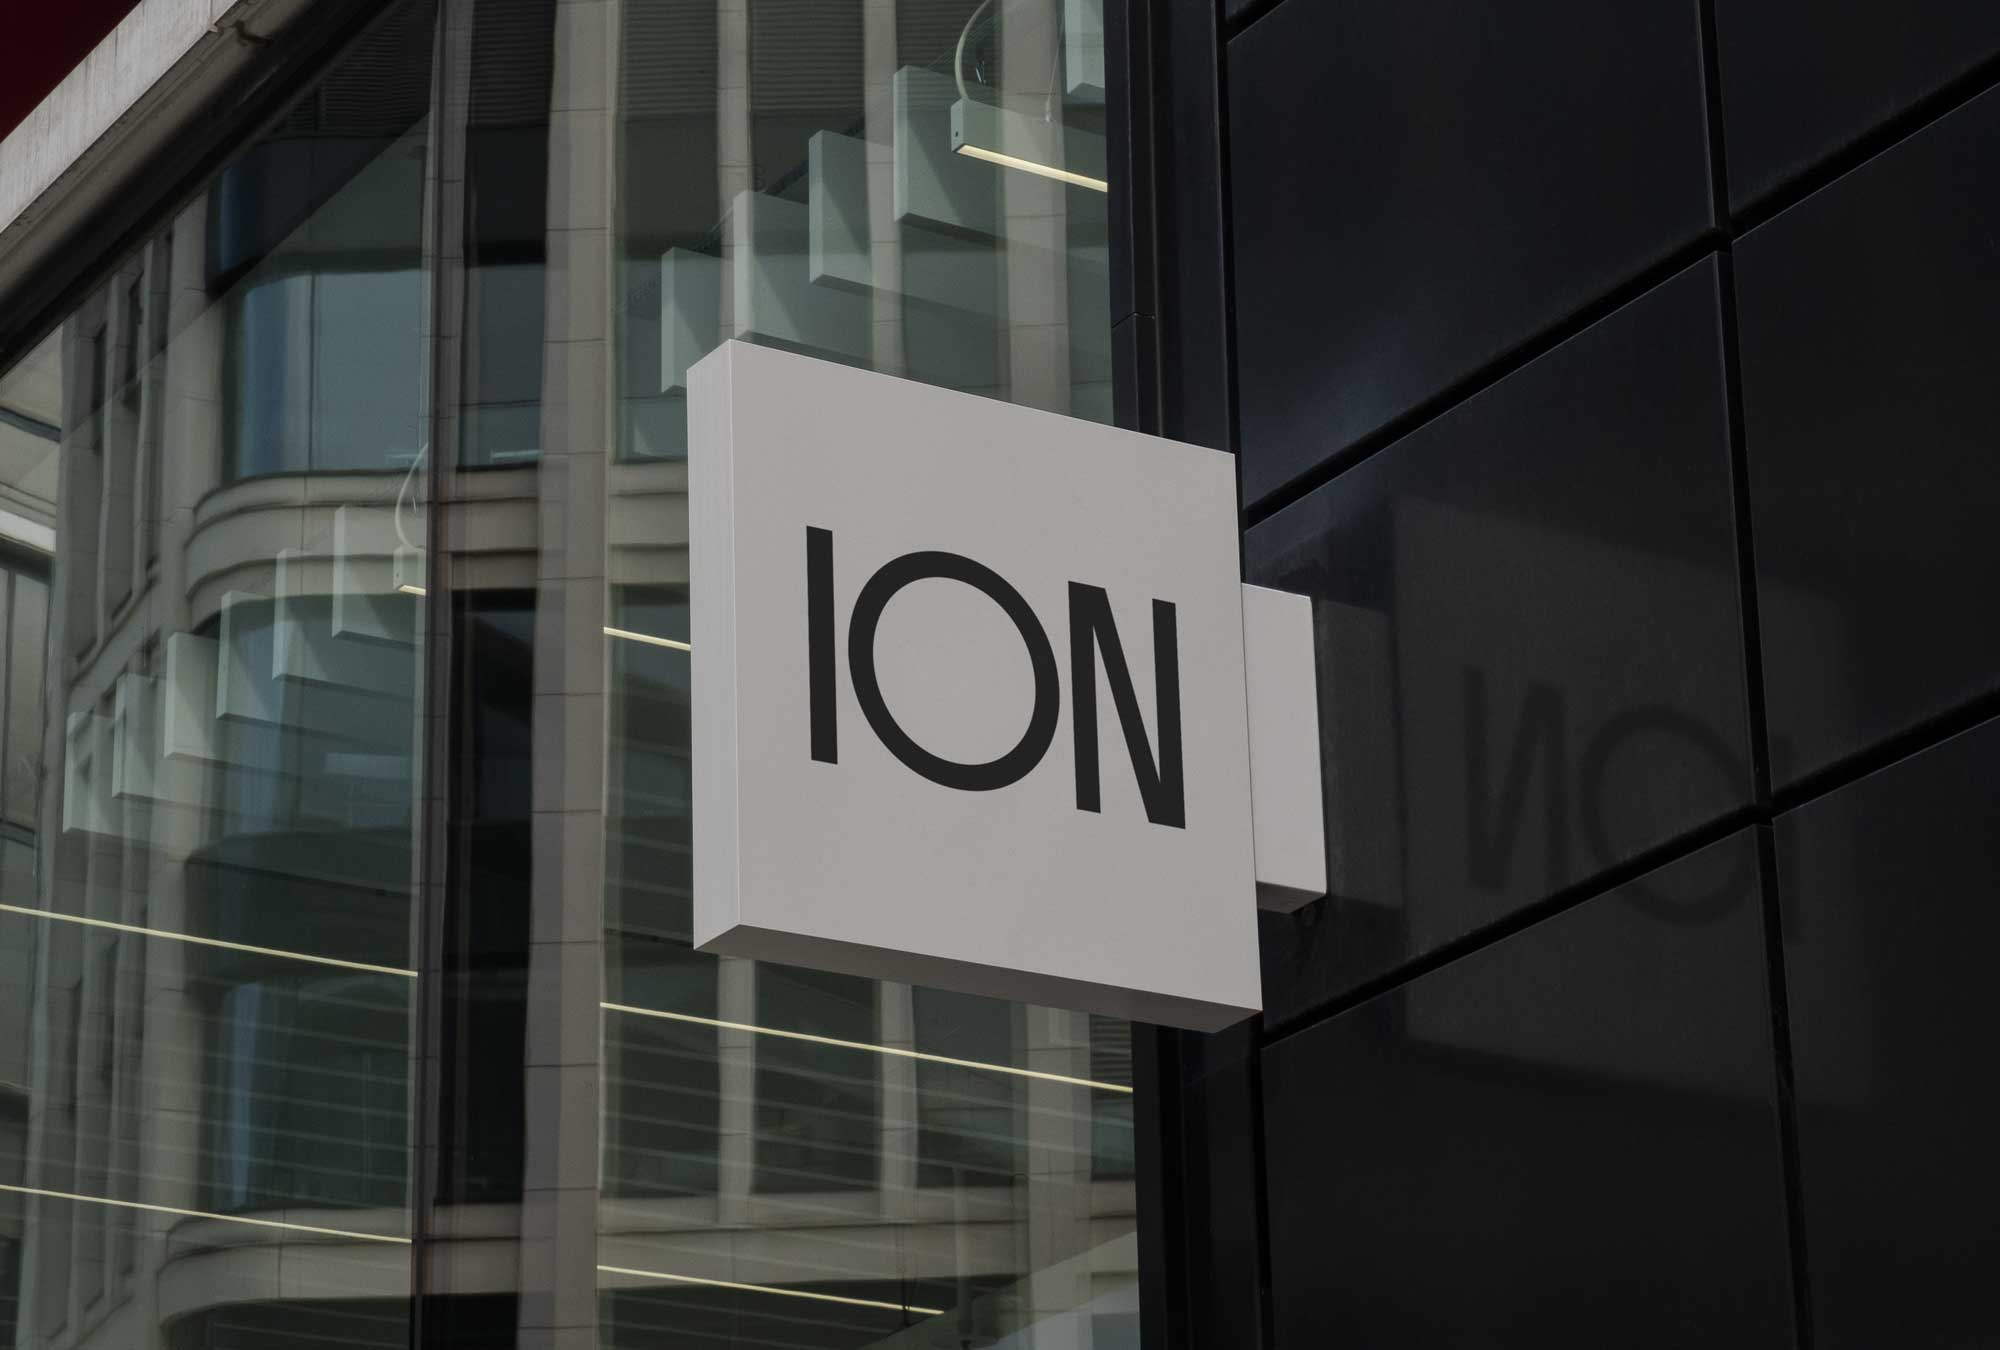 ion_sign